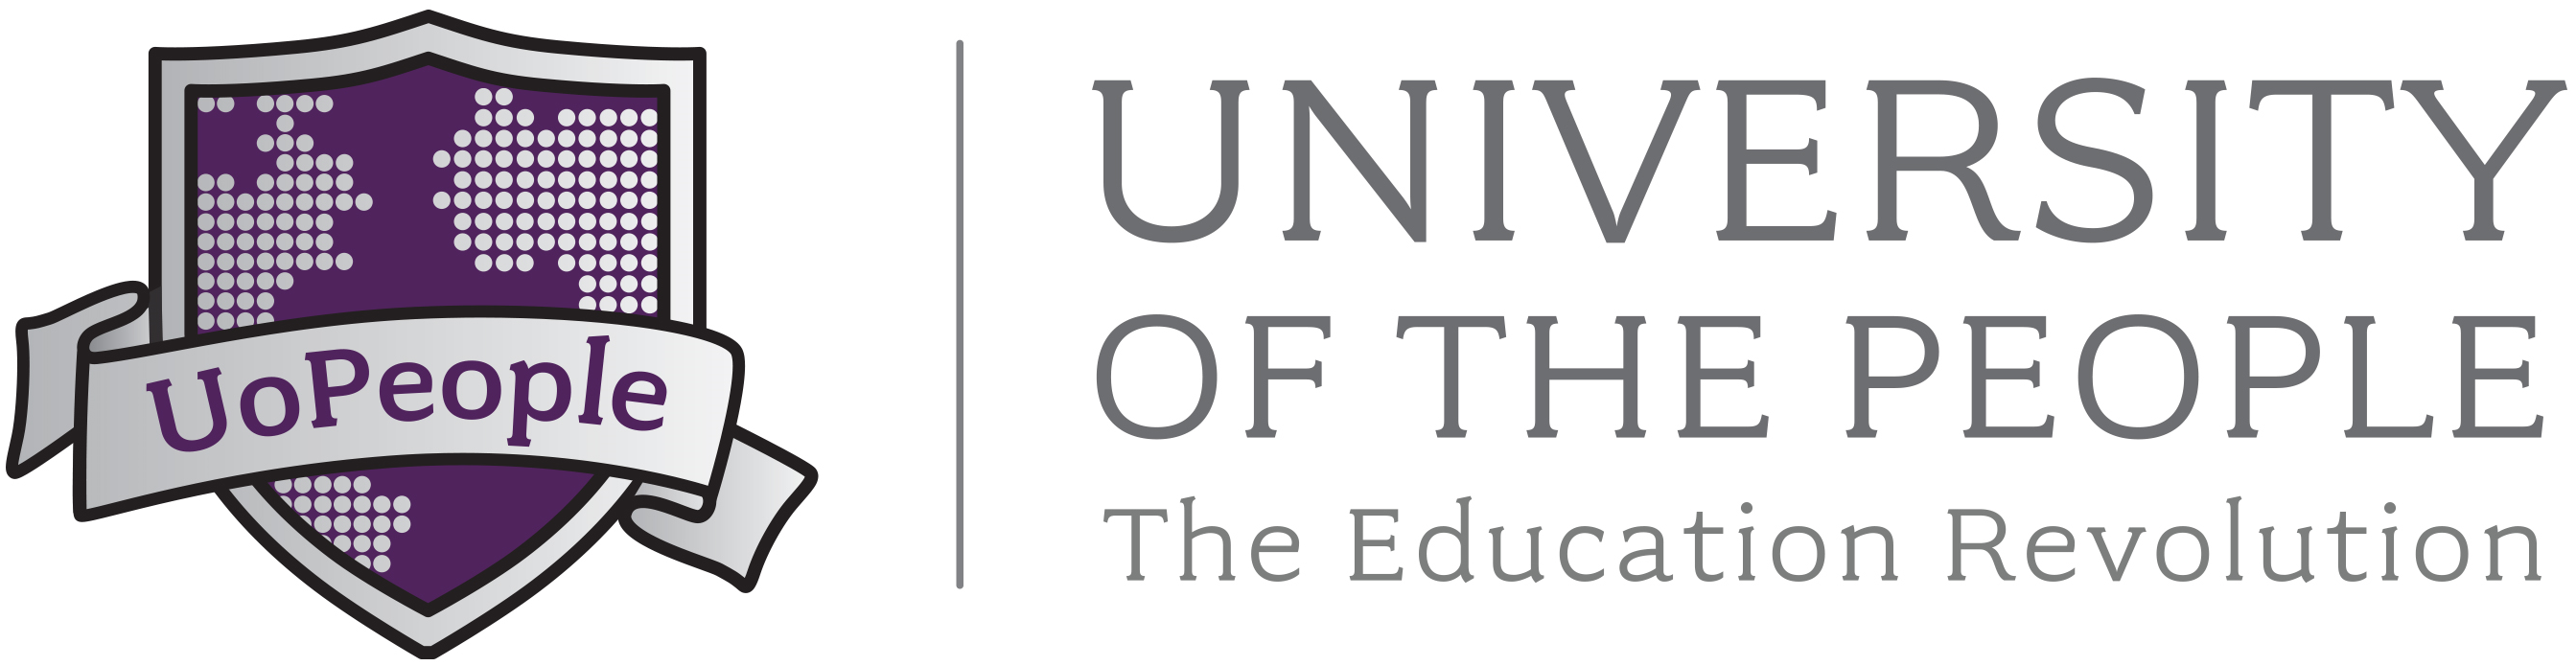 University of the People (UoPeople)